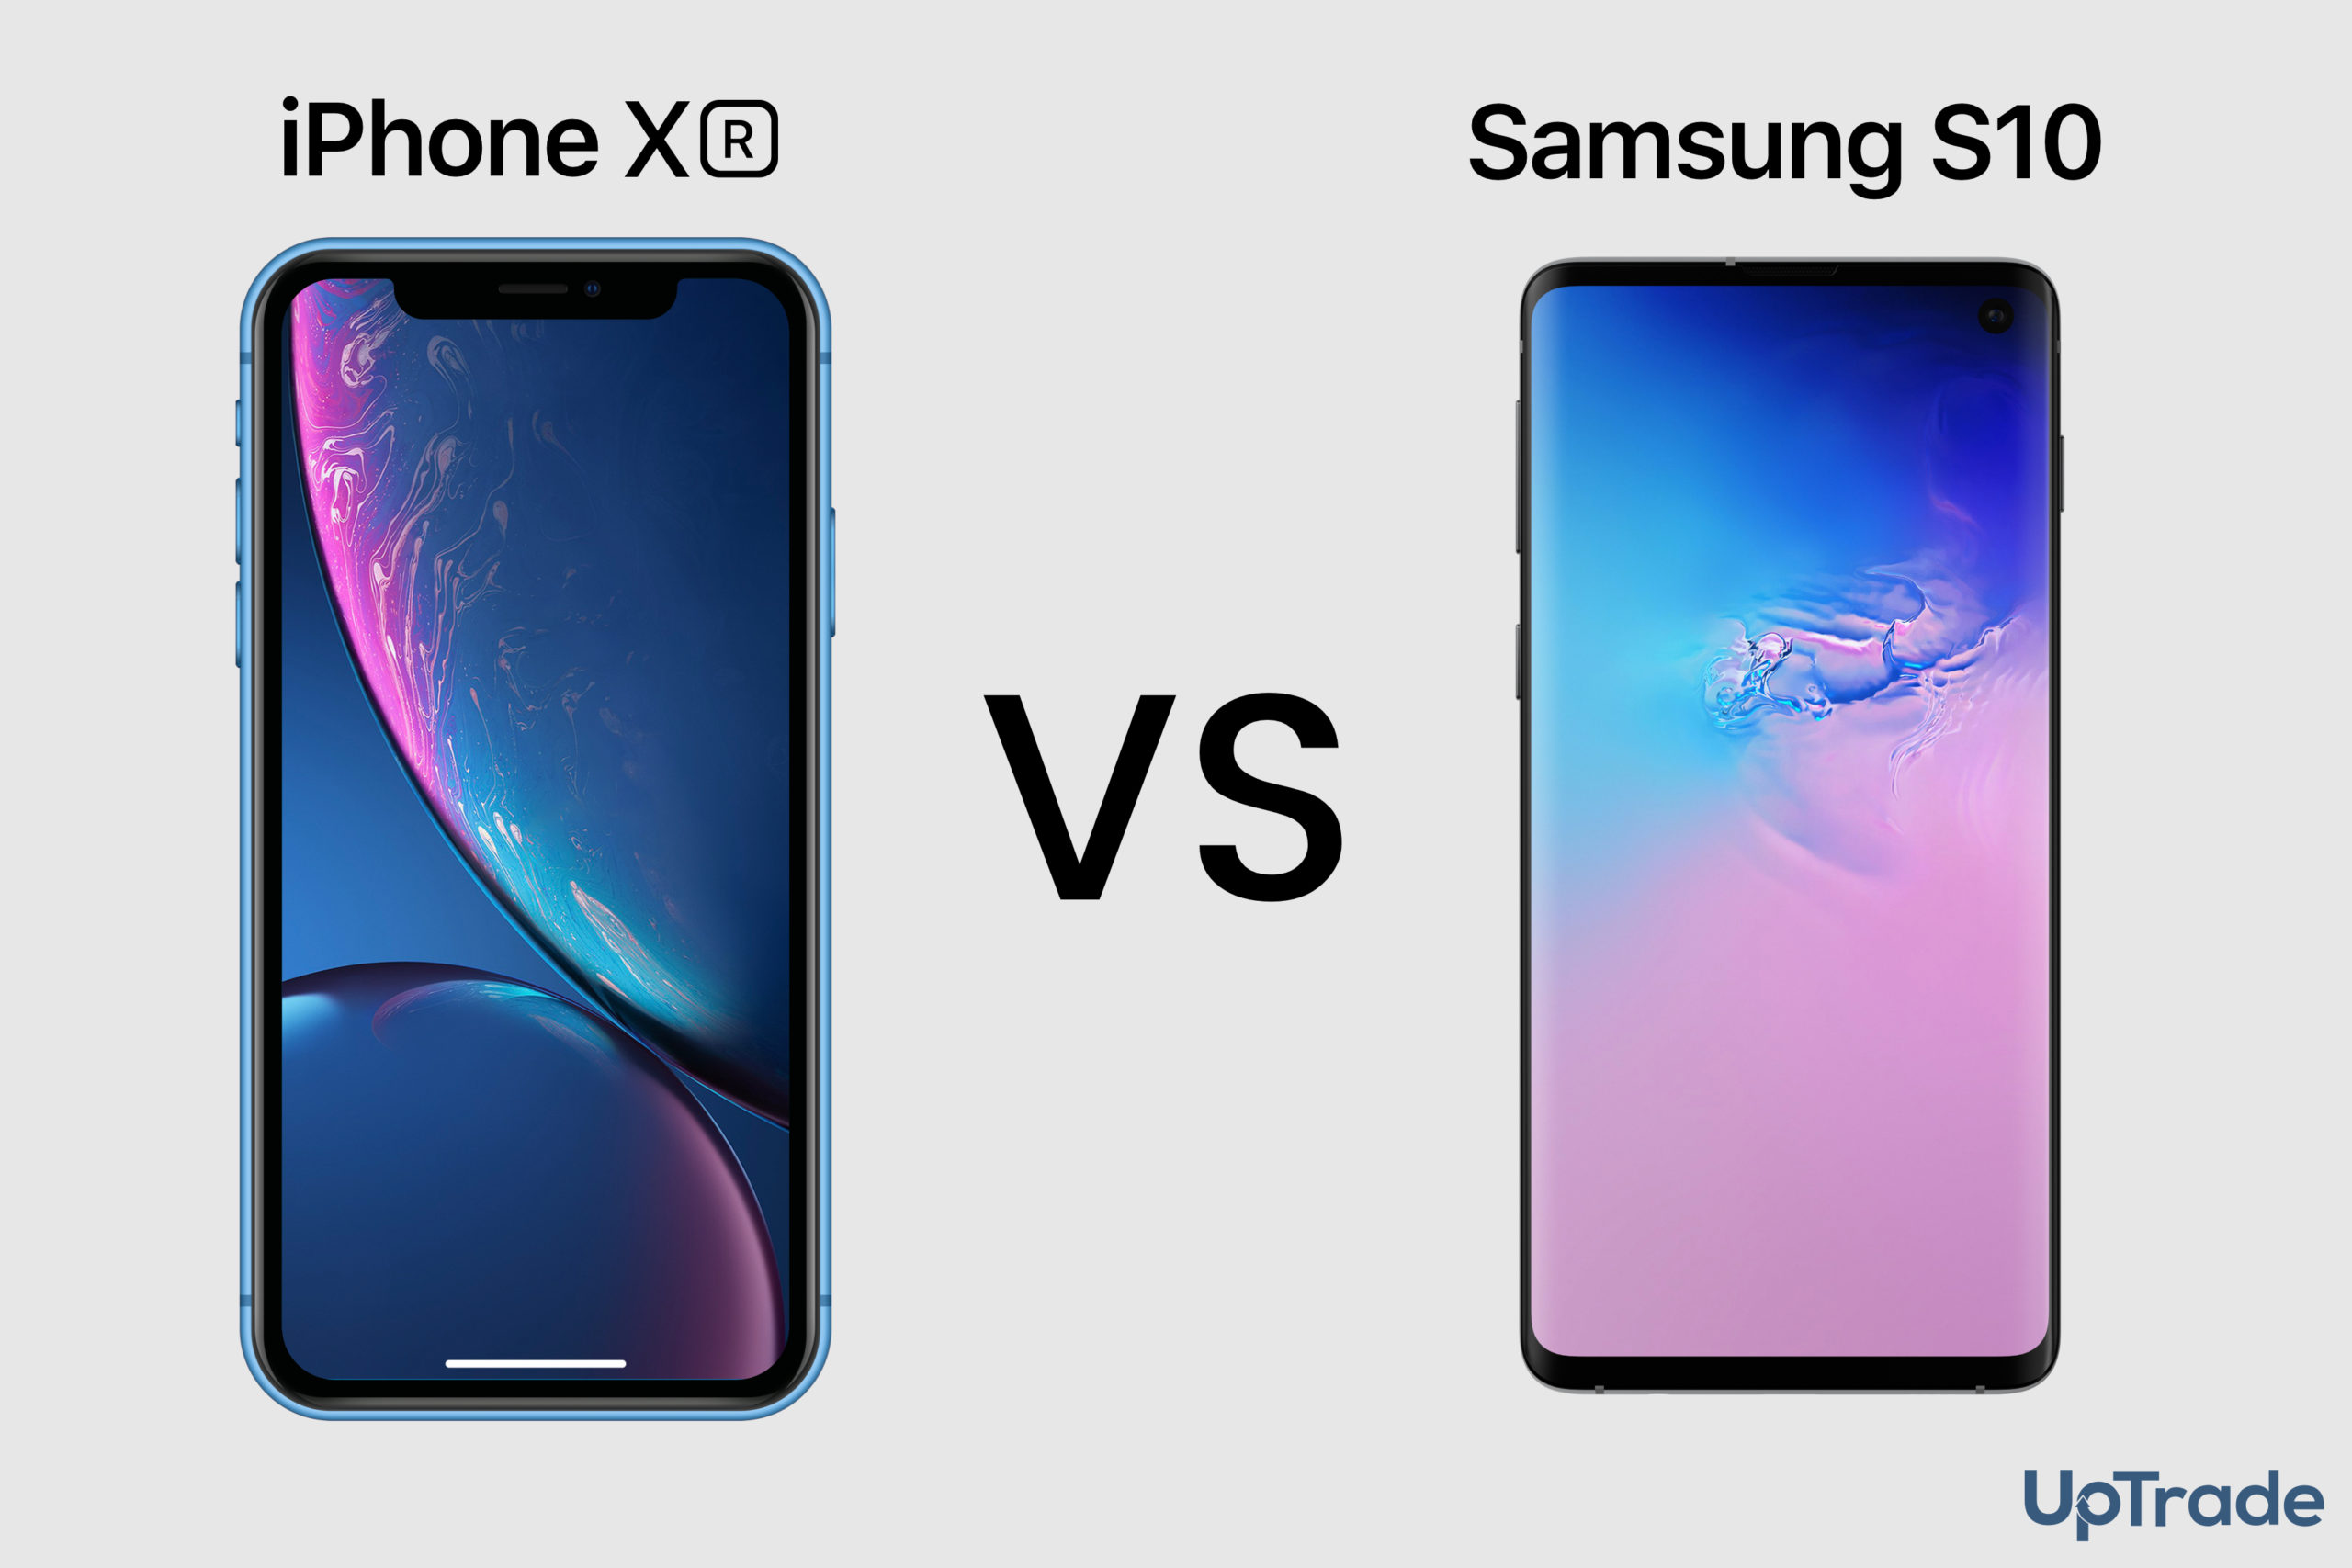 iPhone XR vs Samsung Galaxy S10